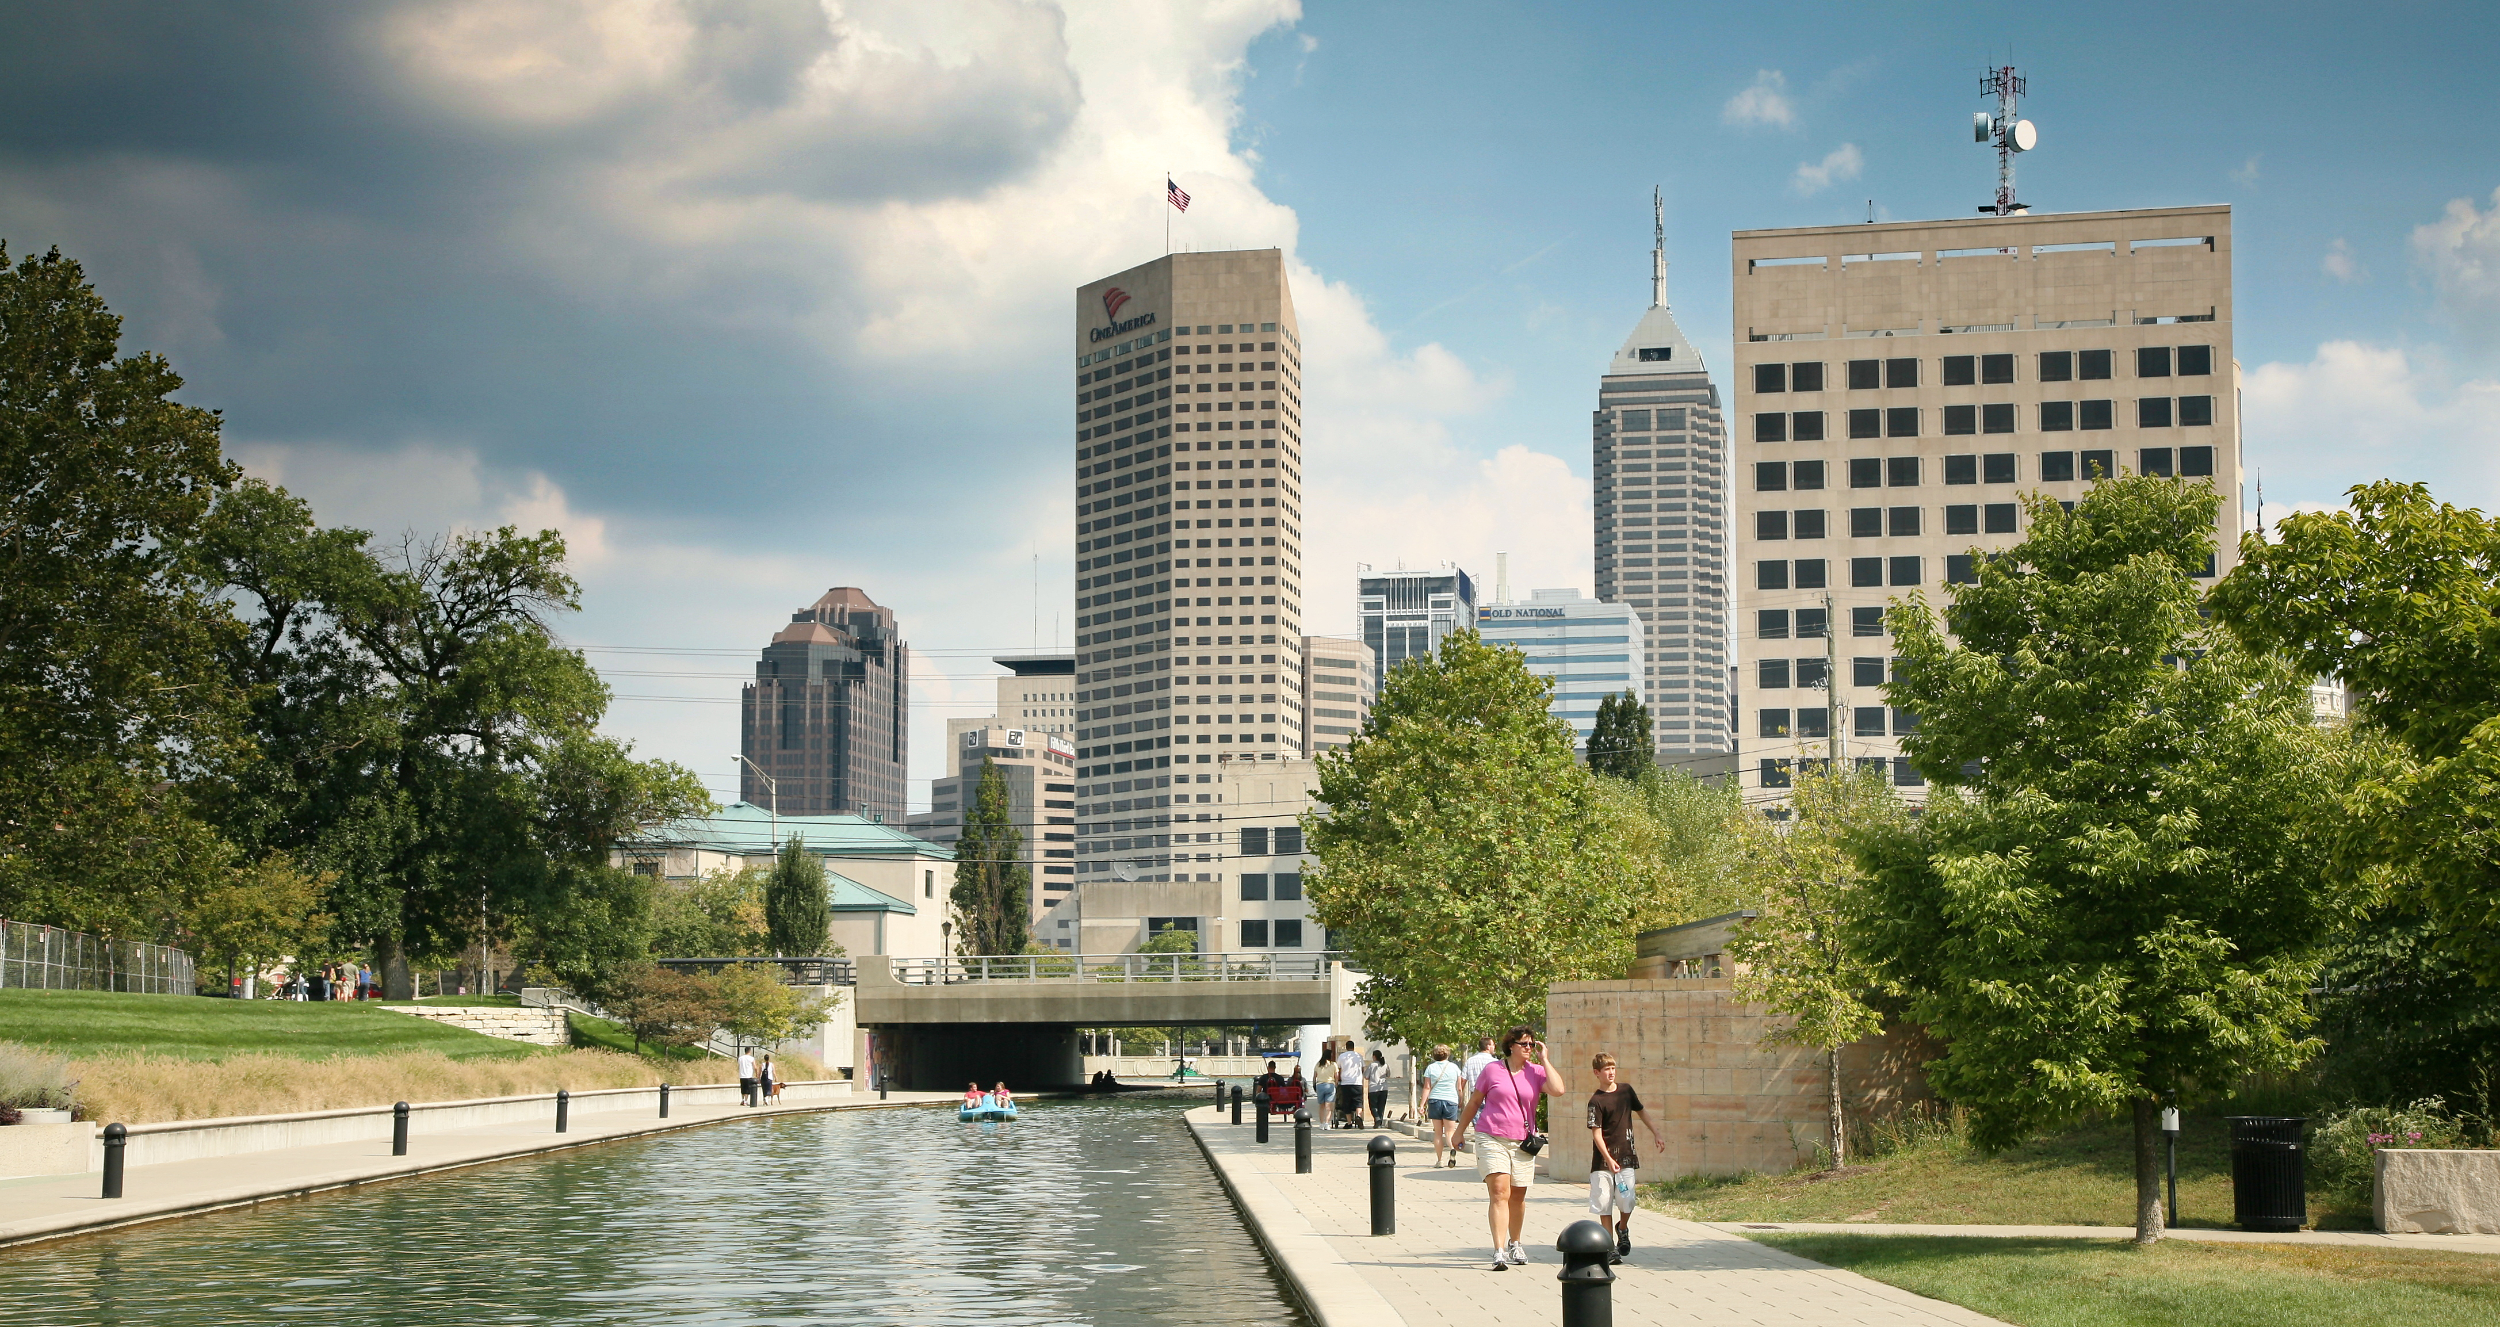 Indianapolis Central Canal, Indianapolis, Indiana (Daniel Schwen/Wikimedia Commons, Creative Commons)